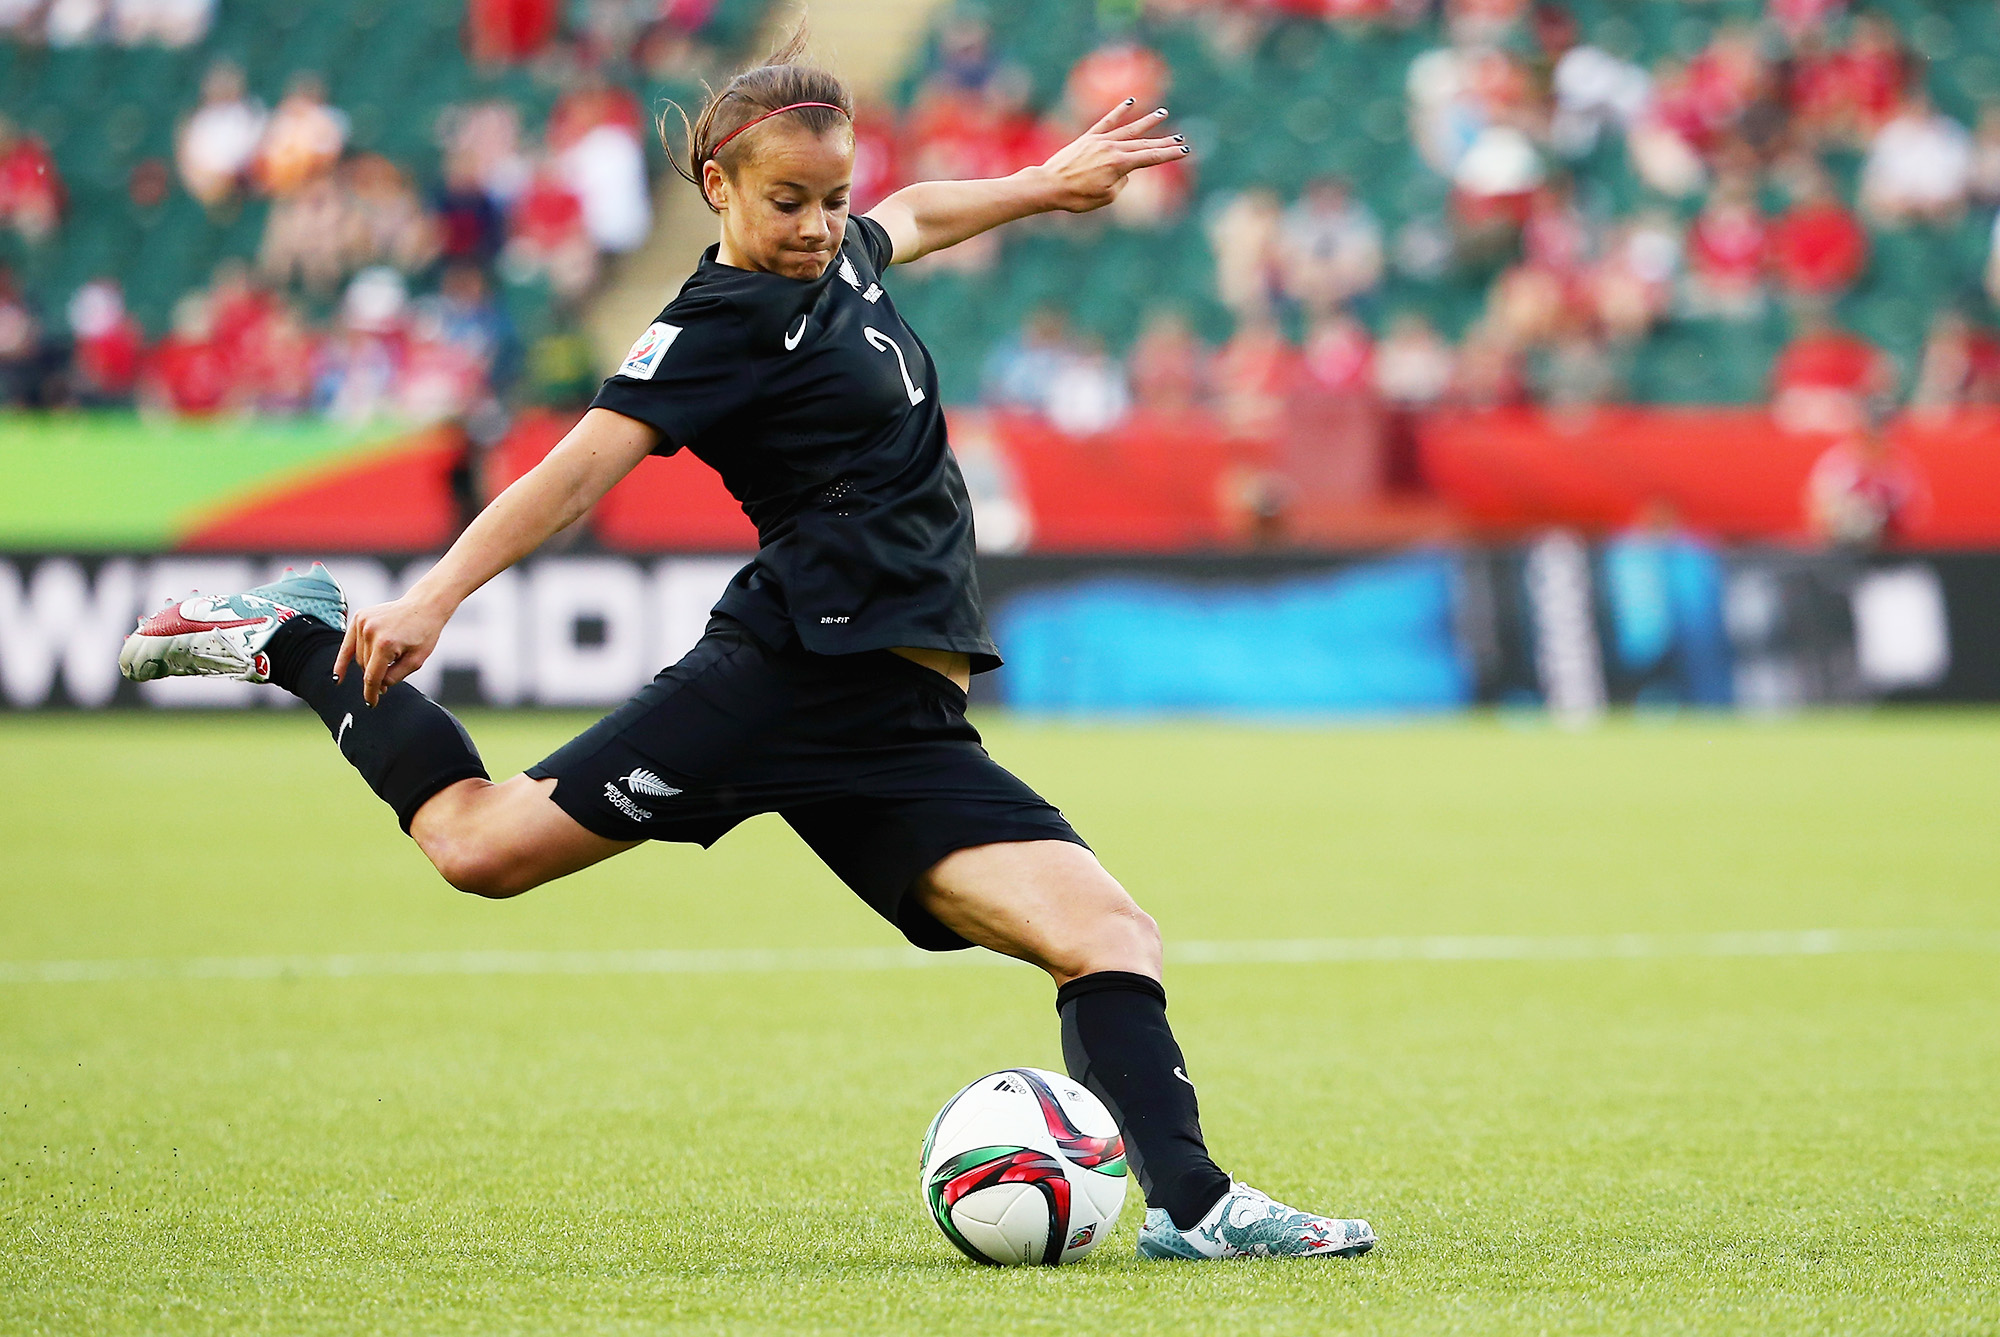 EDMONTON, AB - JUNE 06: Ria Percival #2 of New Zealand crosses the ball during the FIFA Women's World Cup Canada 2015 Group A match between New Zealand and Netherlands at Commonwealth Stadium on June 6, 2015 in Edmonton, Alberta, Canada. (Photo by Maddie Meyer - FIFA/FIFA via Getty Images)